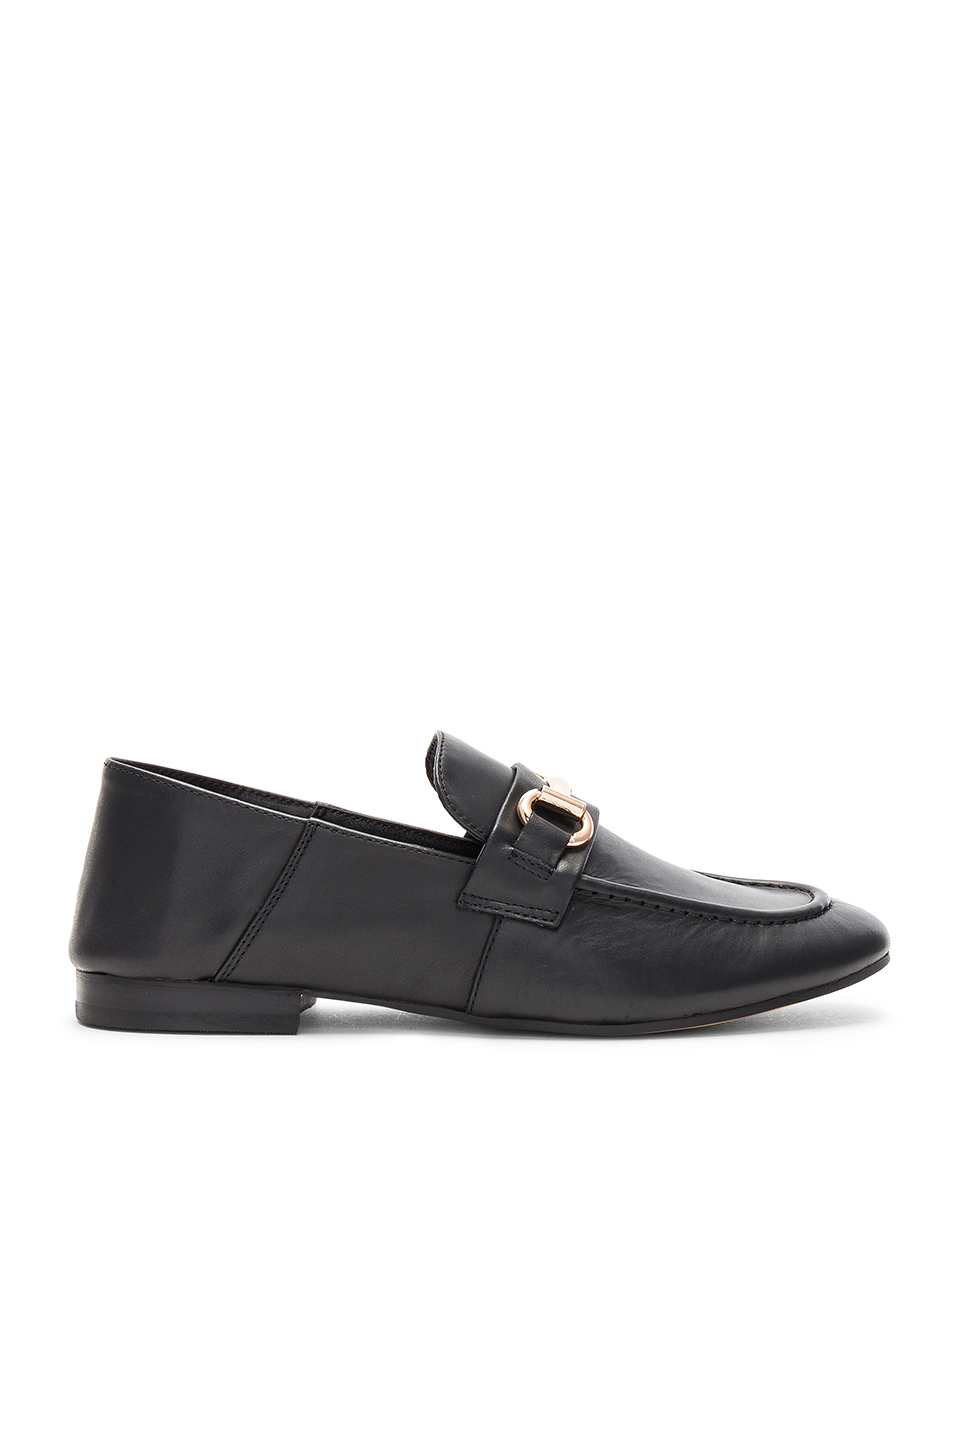 Steven Santana Loafer in Black Leather